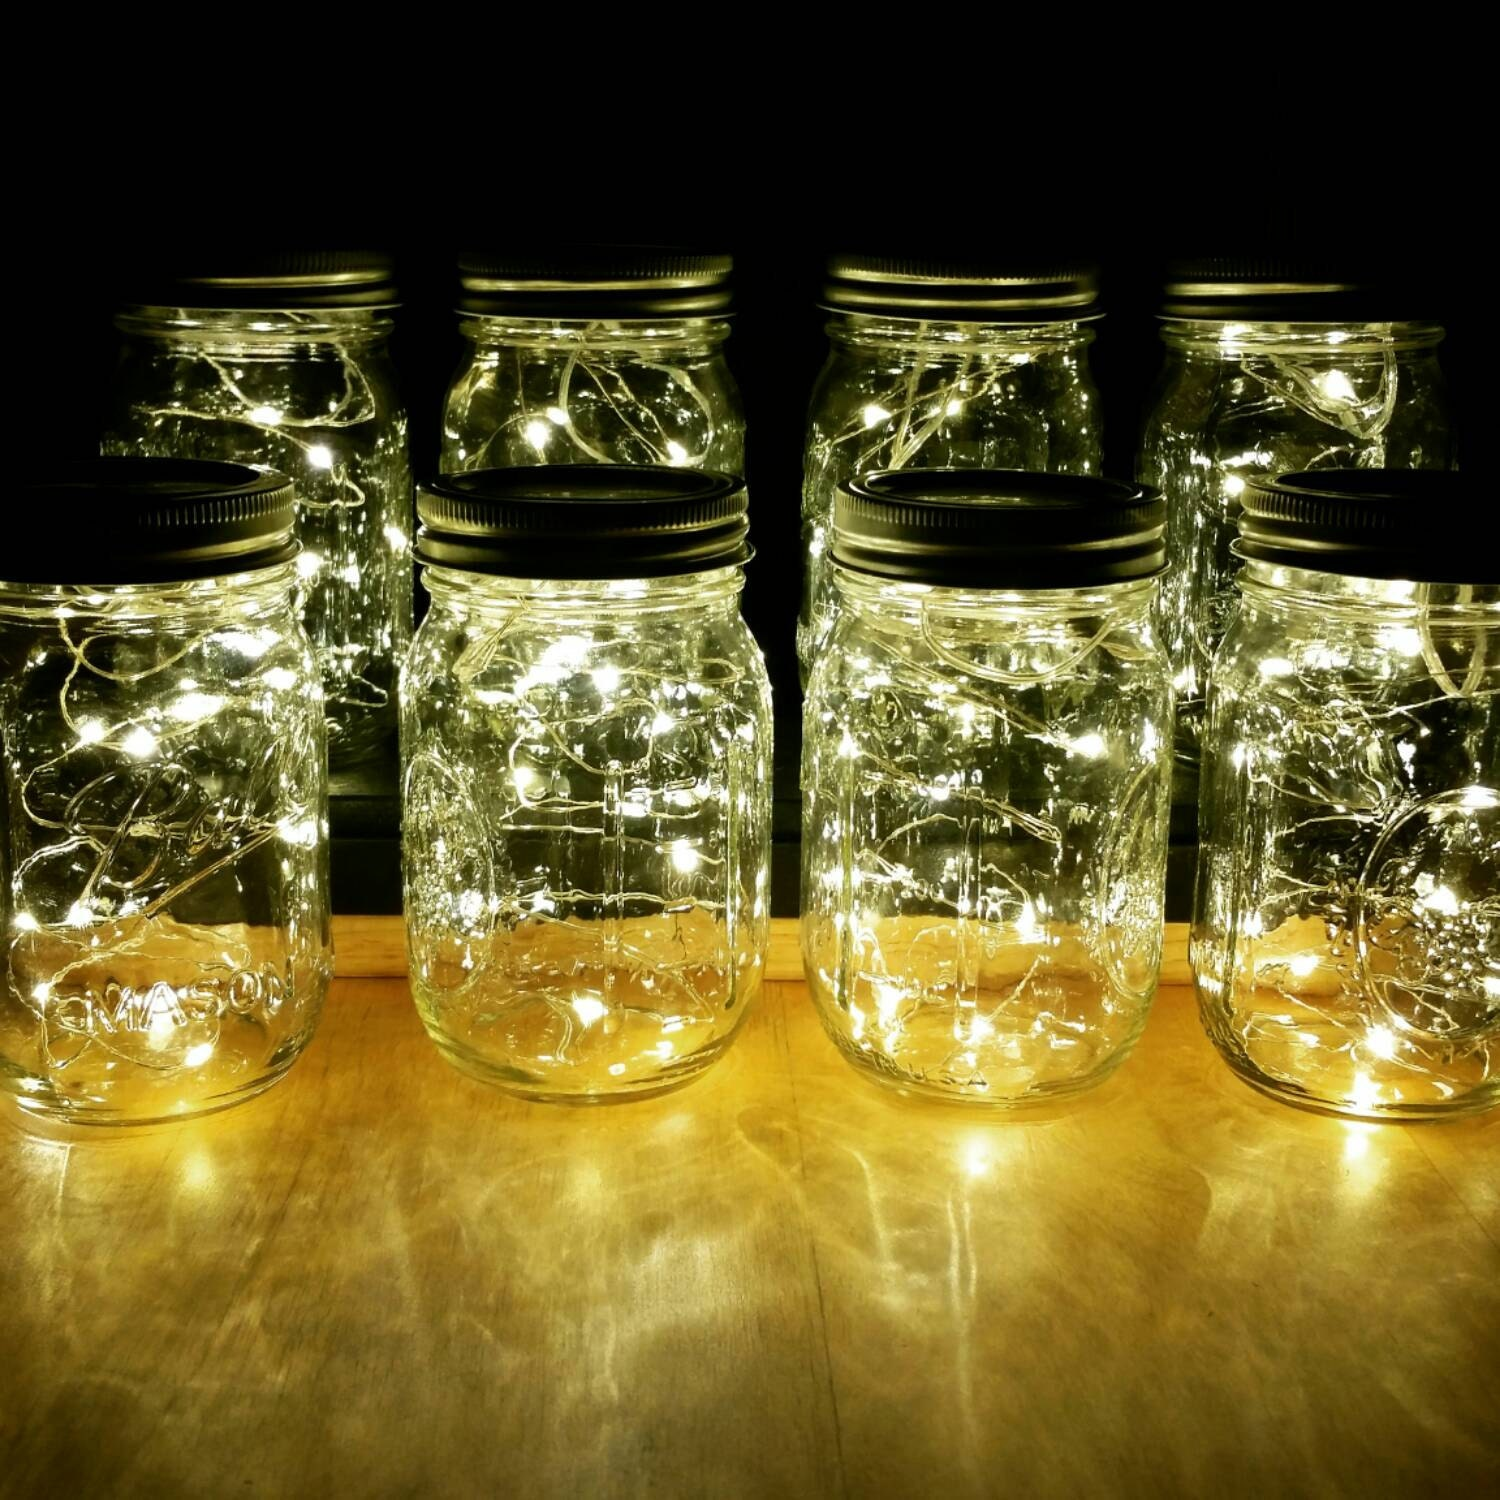 Sale 8 Firefly Lights And Mason Jar Centerpieces Wedding